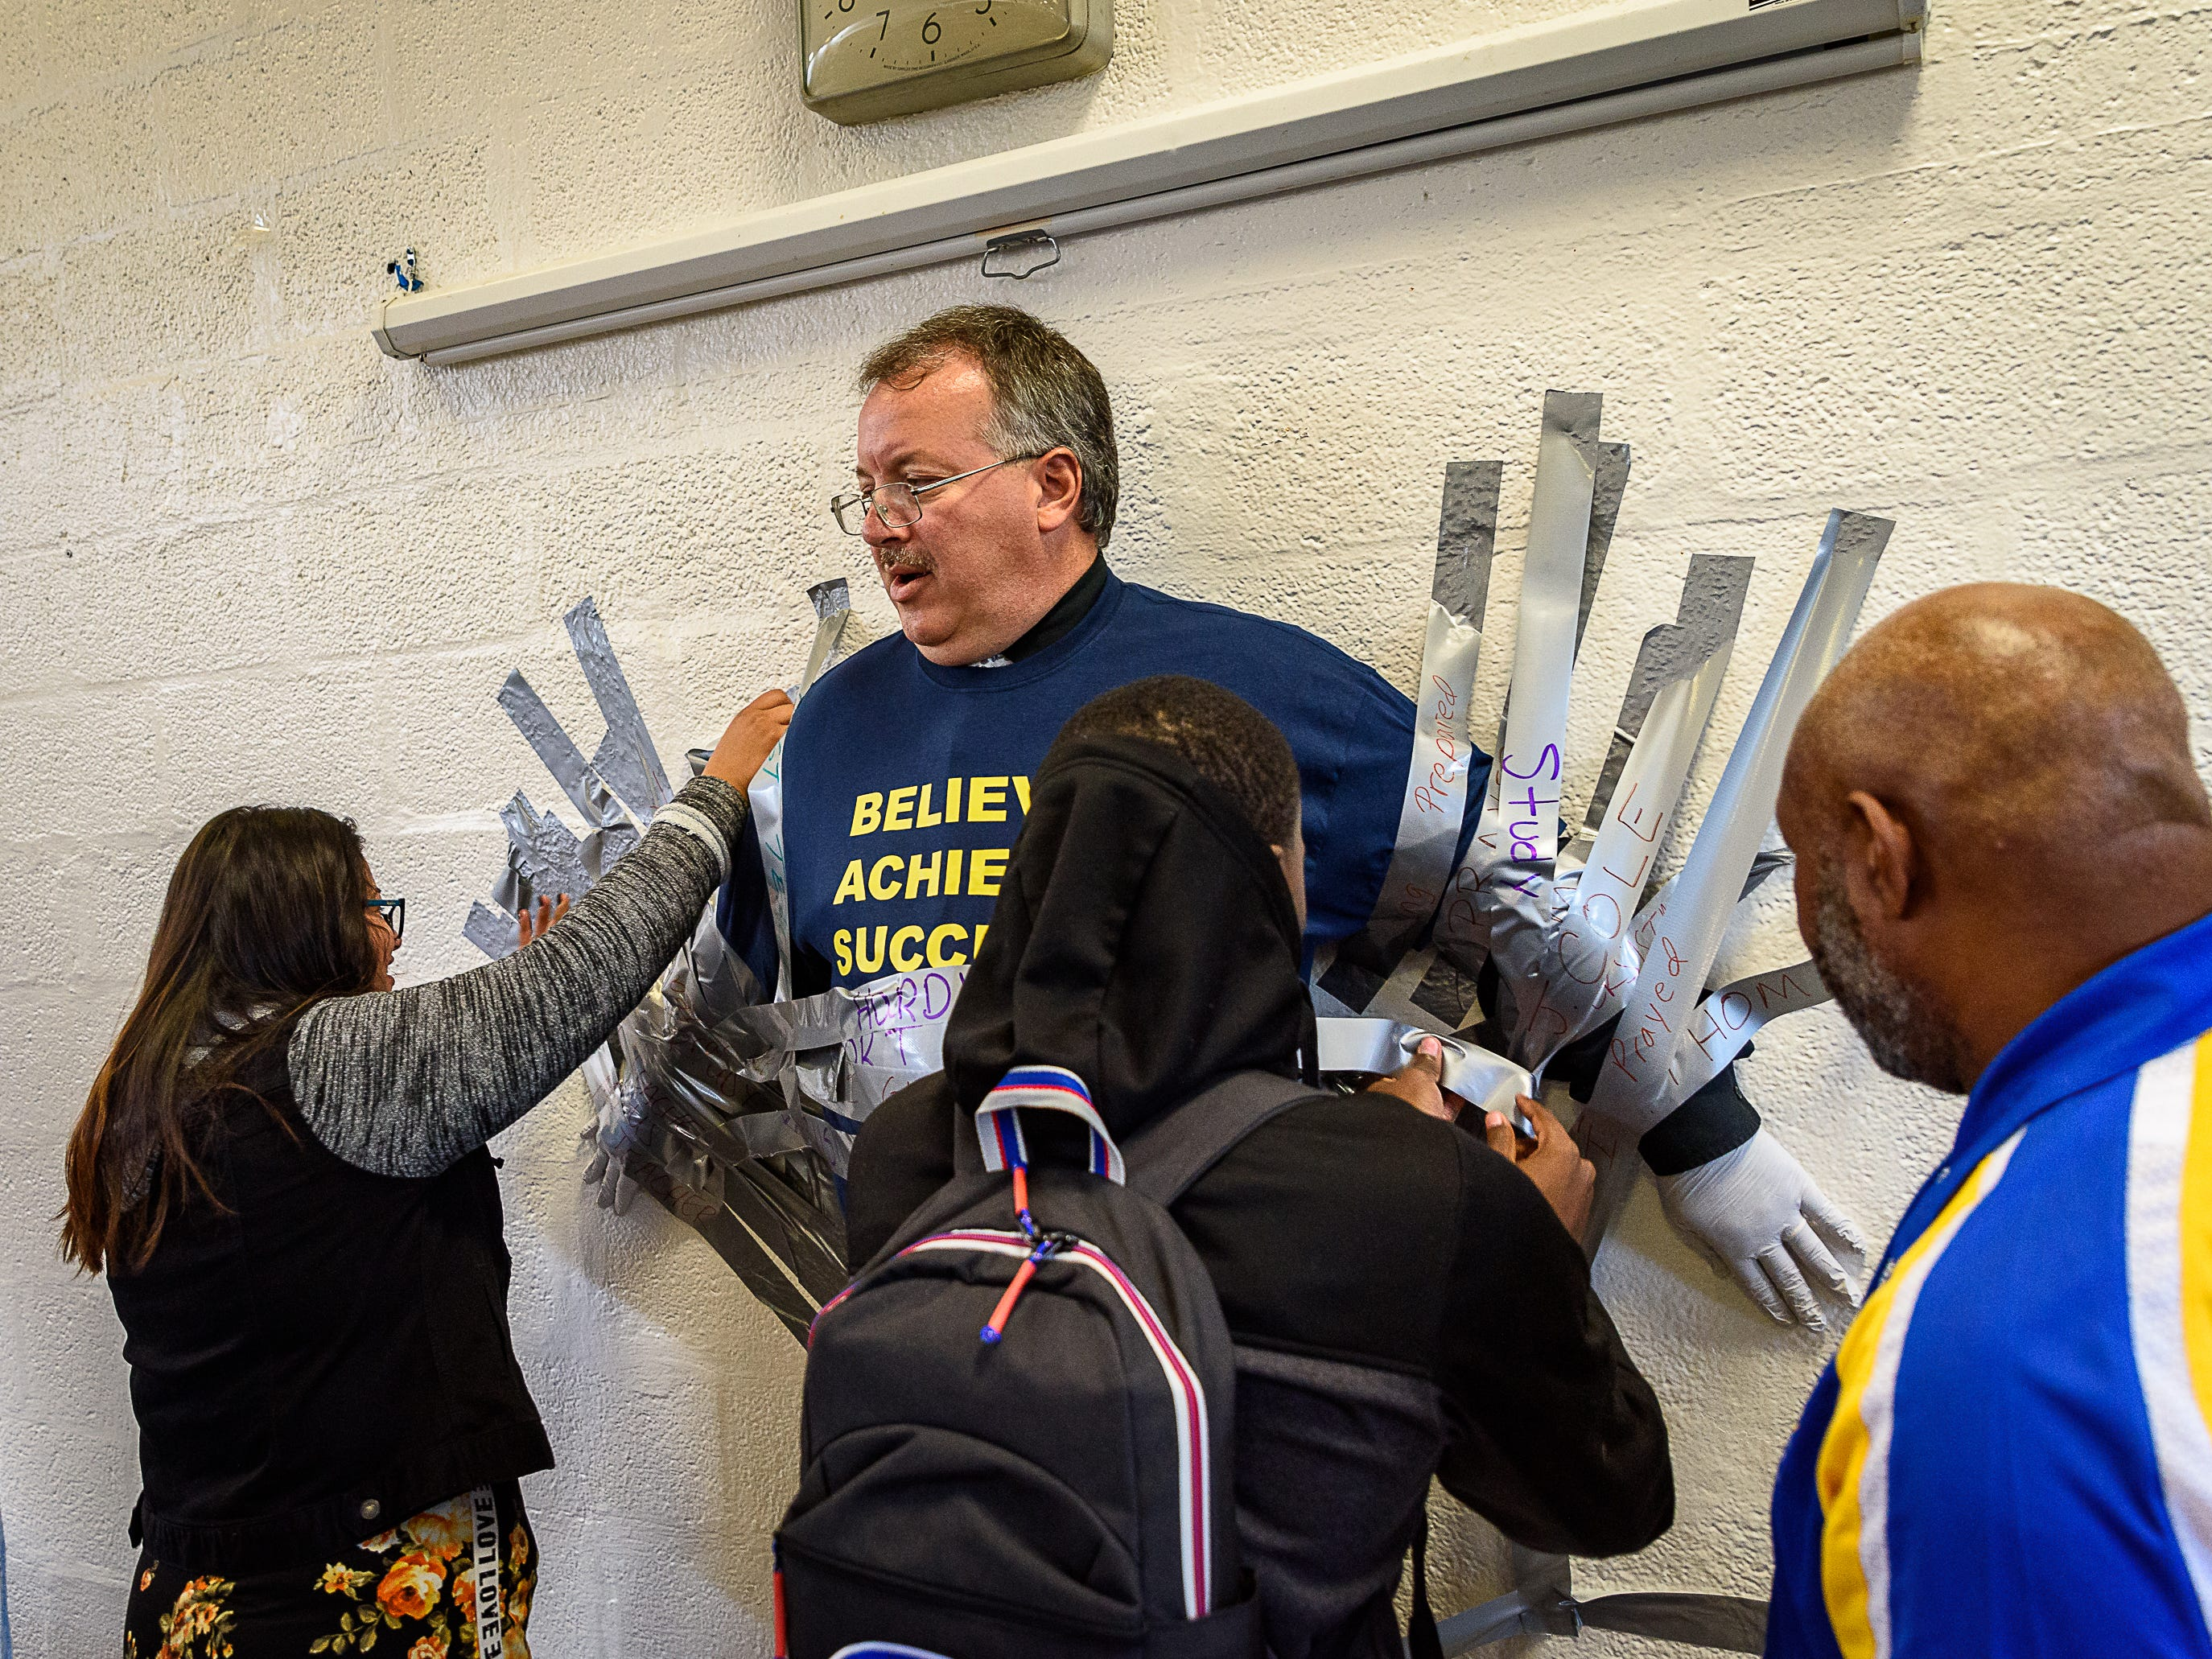 Students work to tape Principal Mike Myers to the wall at Northampton High School.